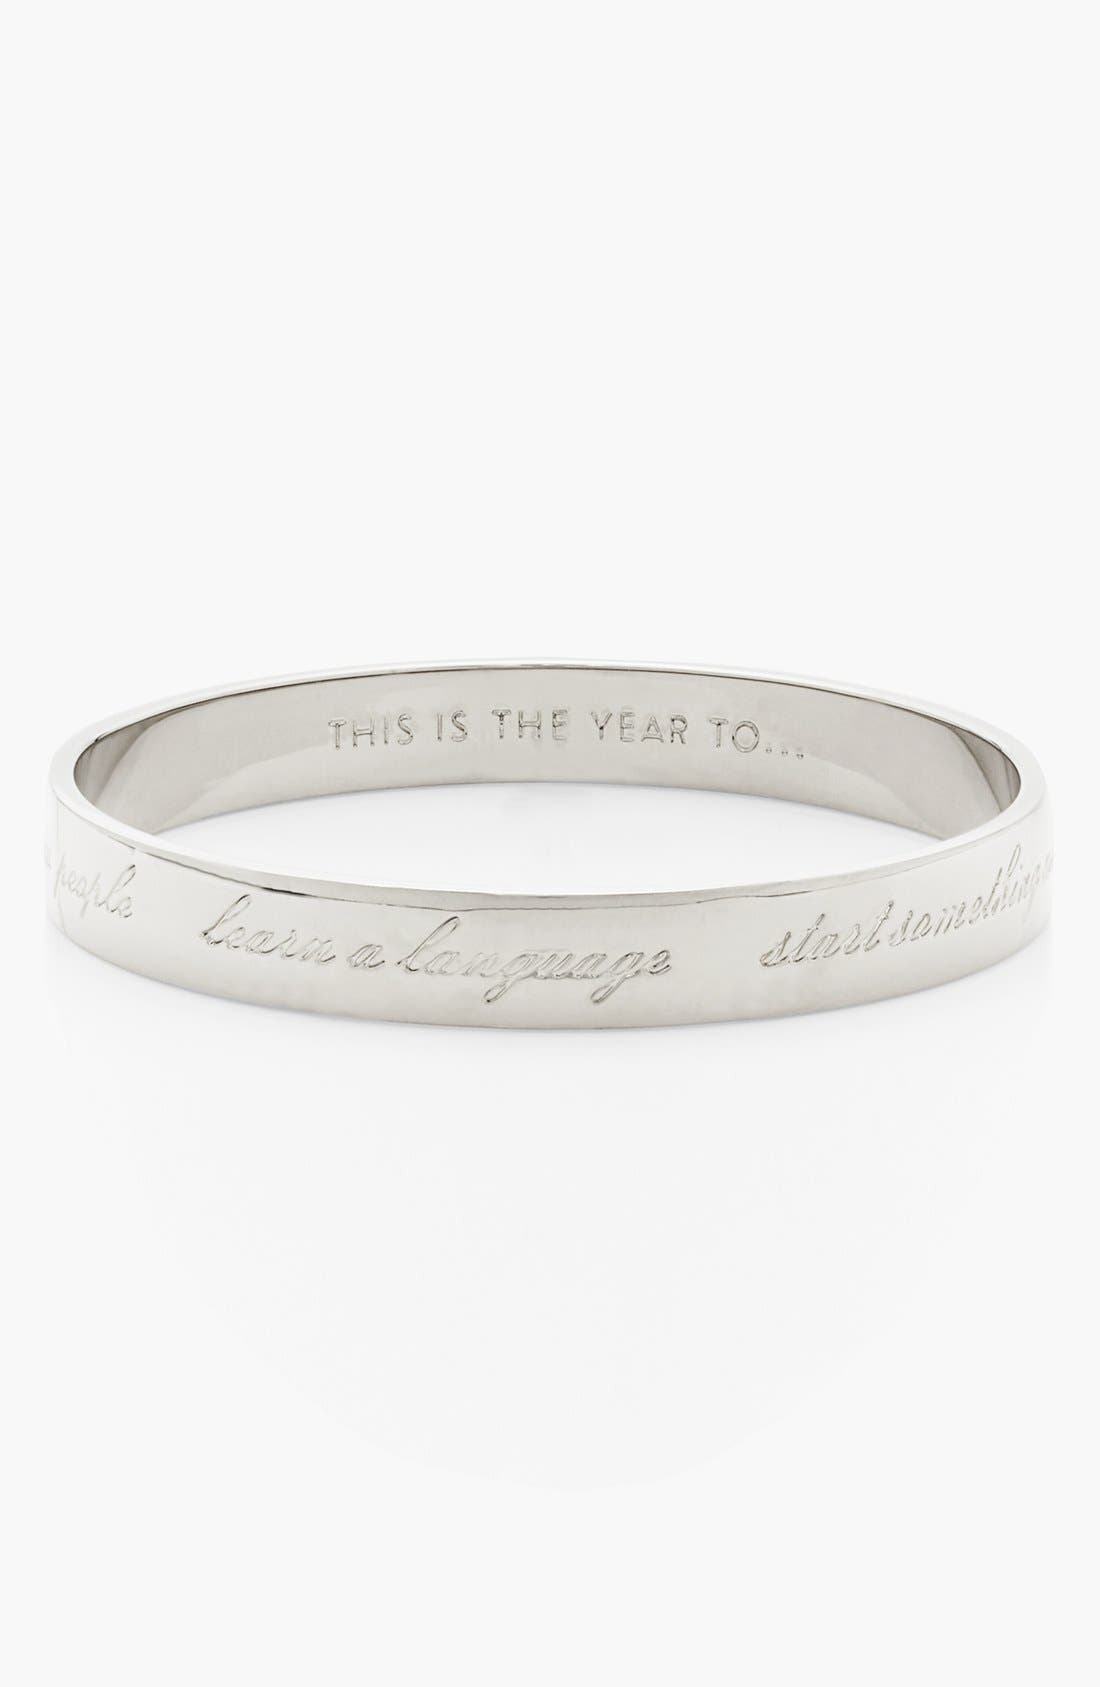 KATE SPADE NEW YORK 'idiom - this is the year to...' thin bangle, Main, color, 040